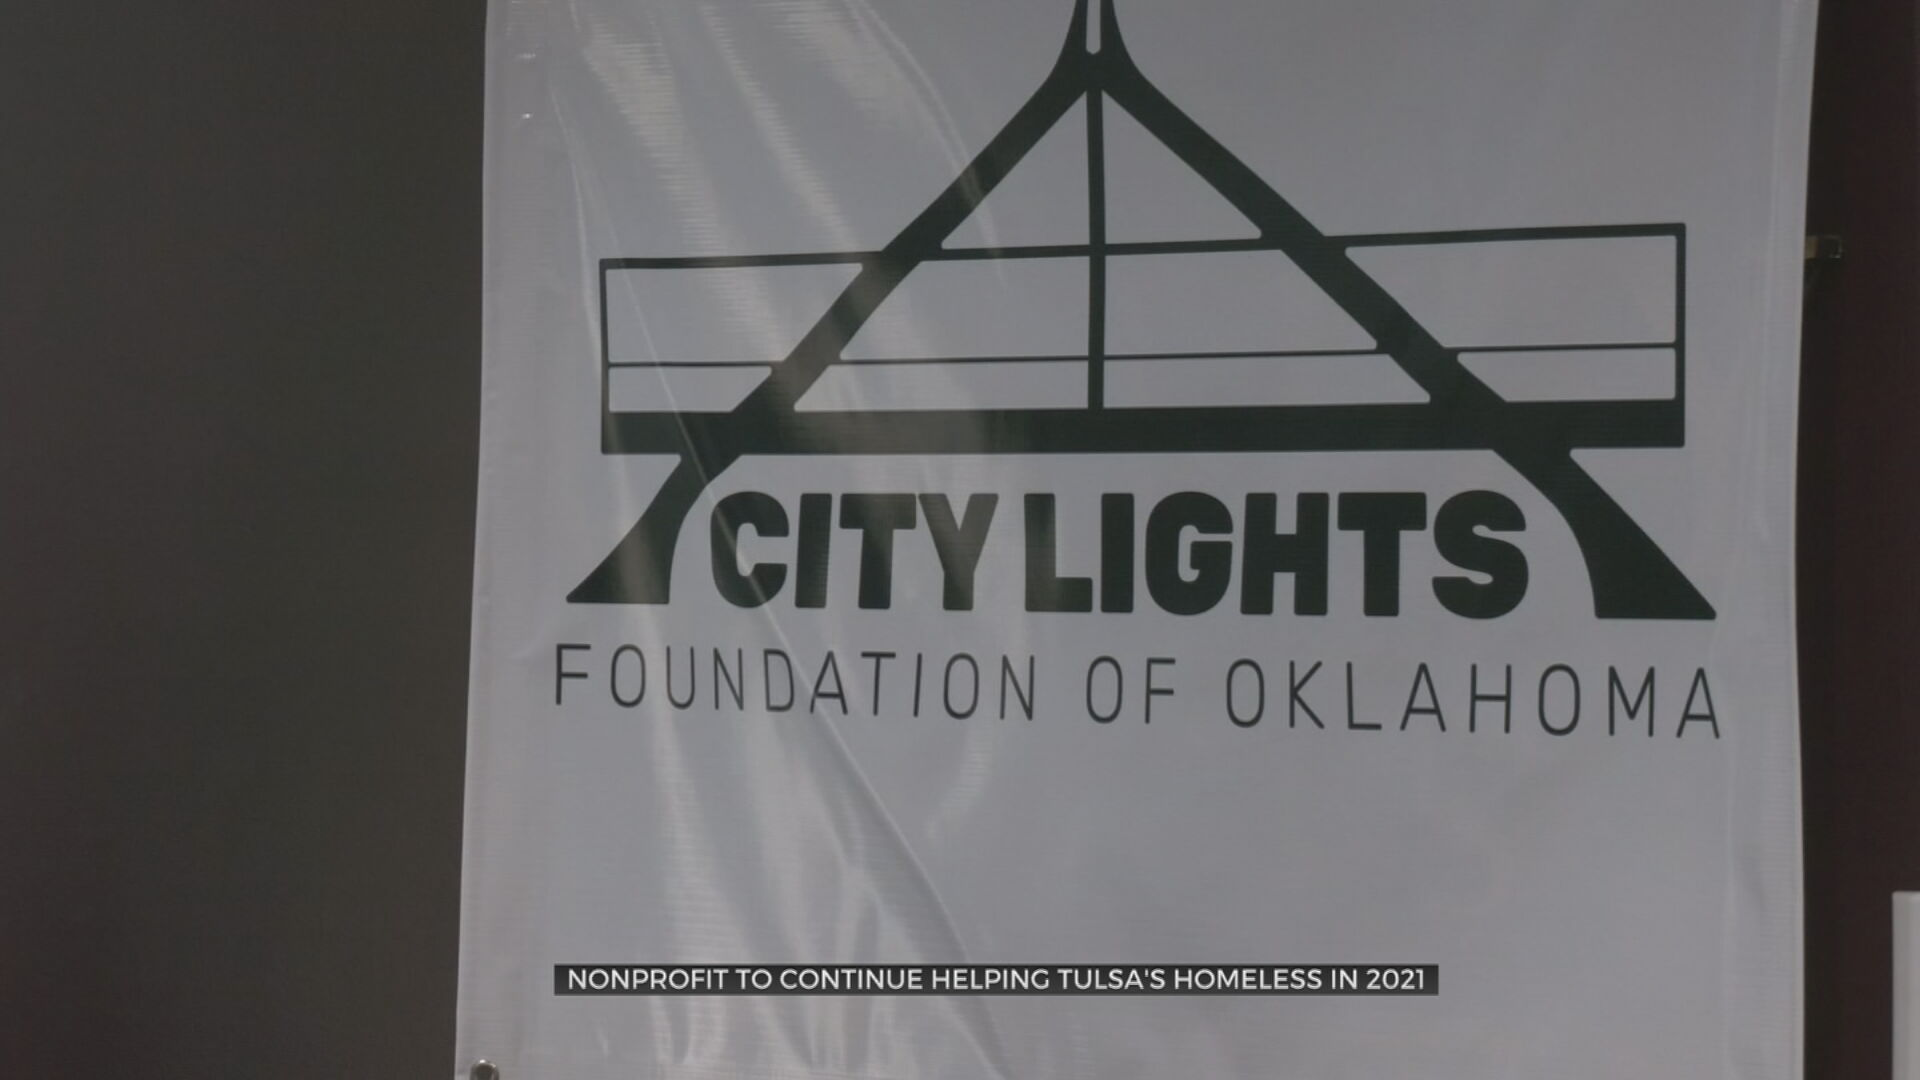 Nonprofit's Vision For 2021: 'Give Dignity, Hope' To Tulsa's Homeless Population